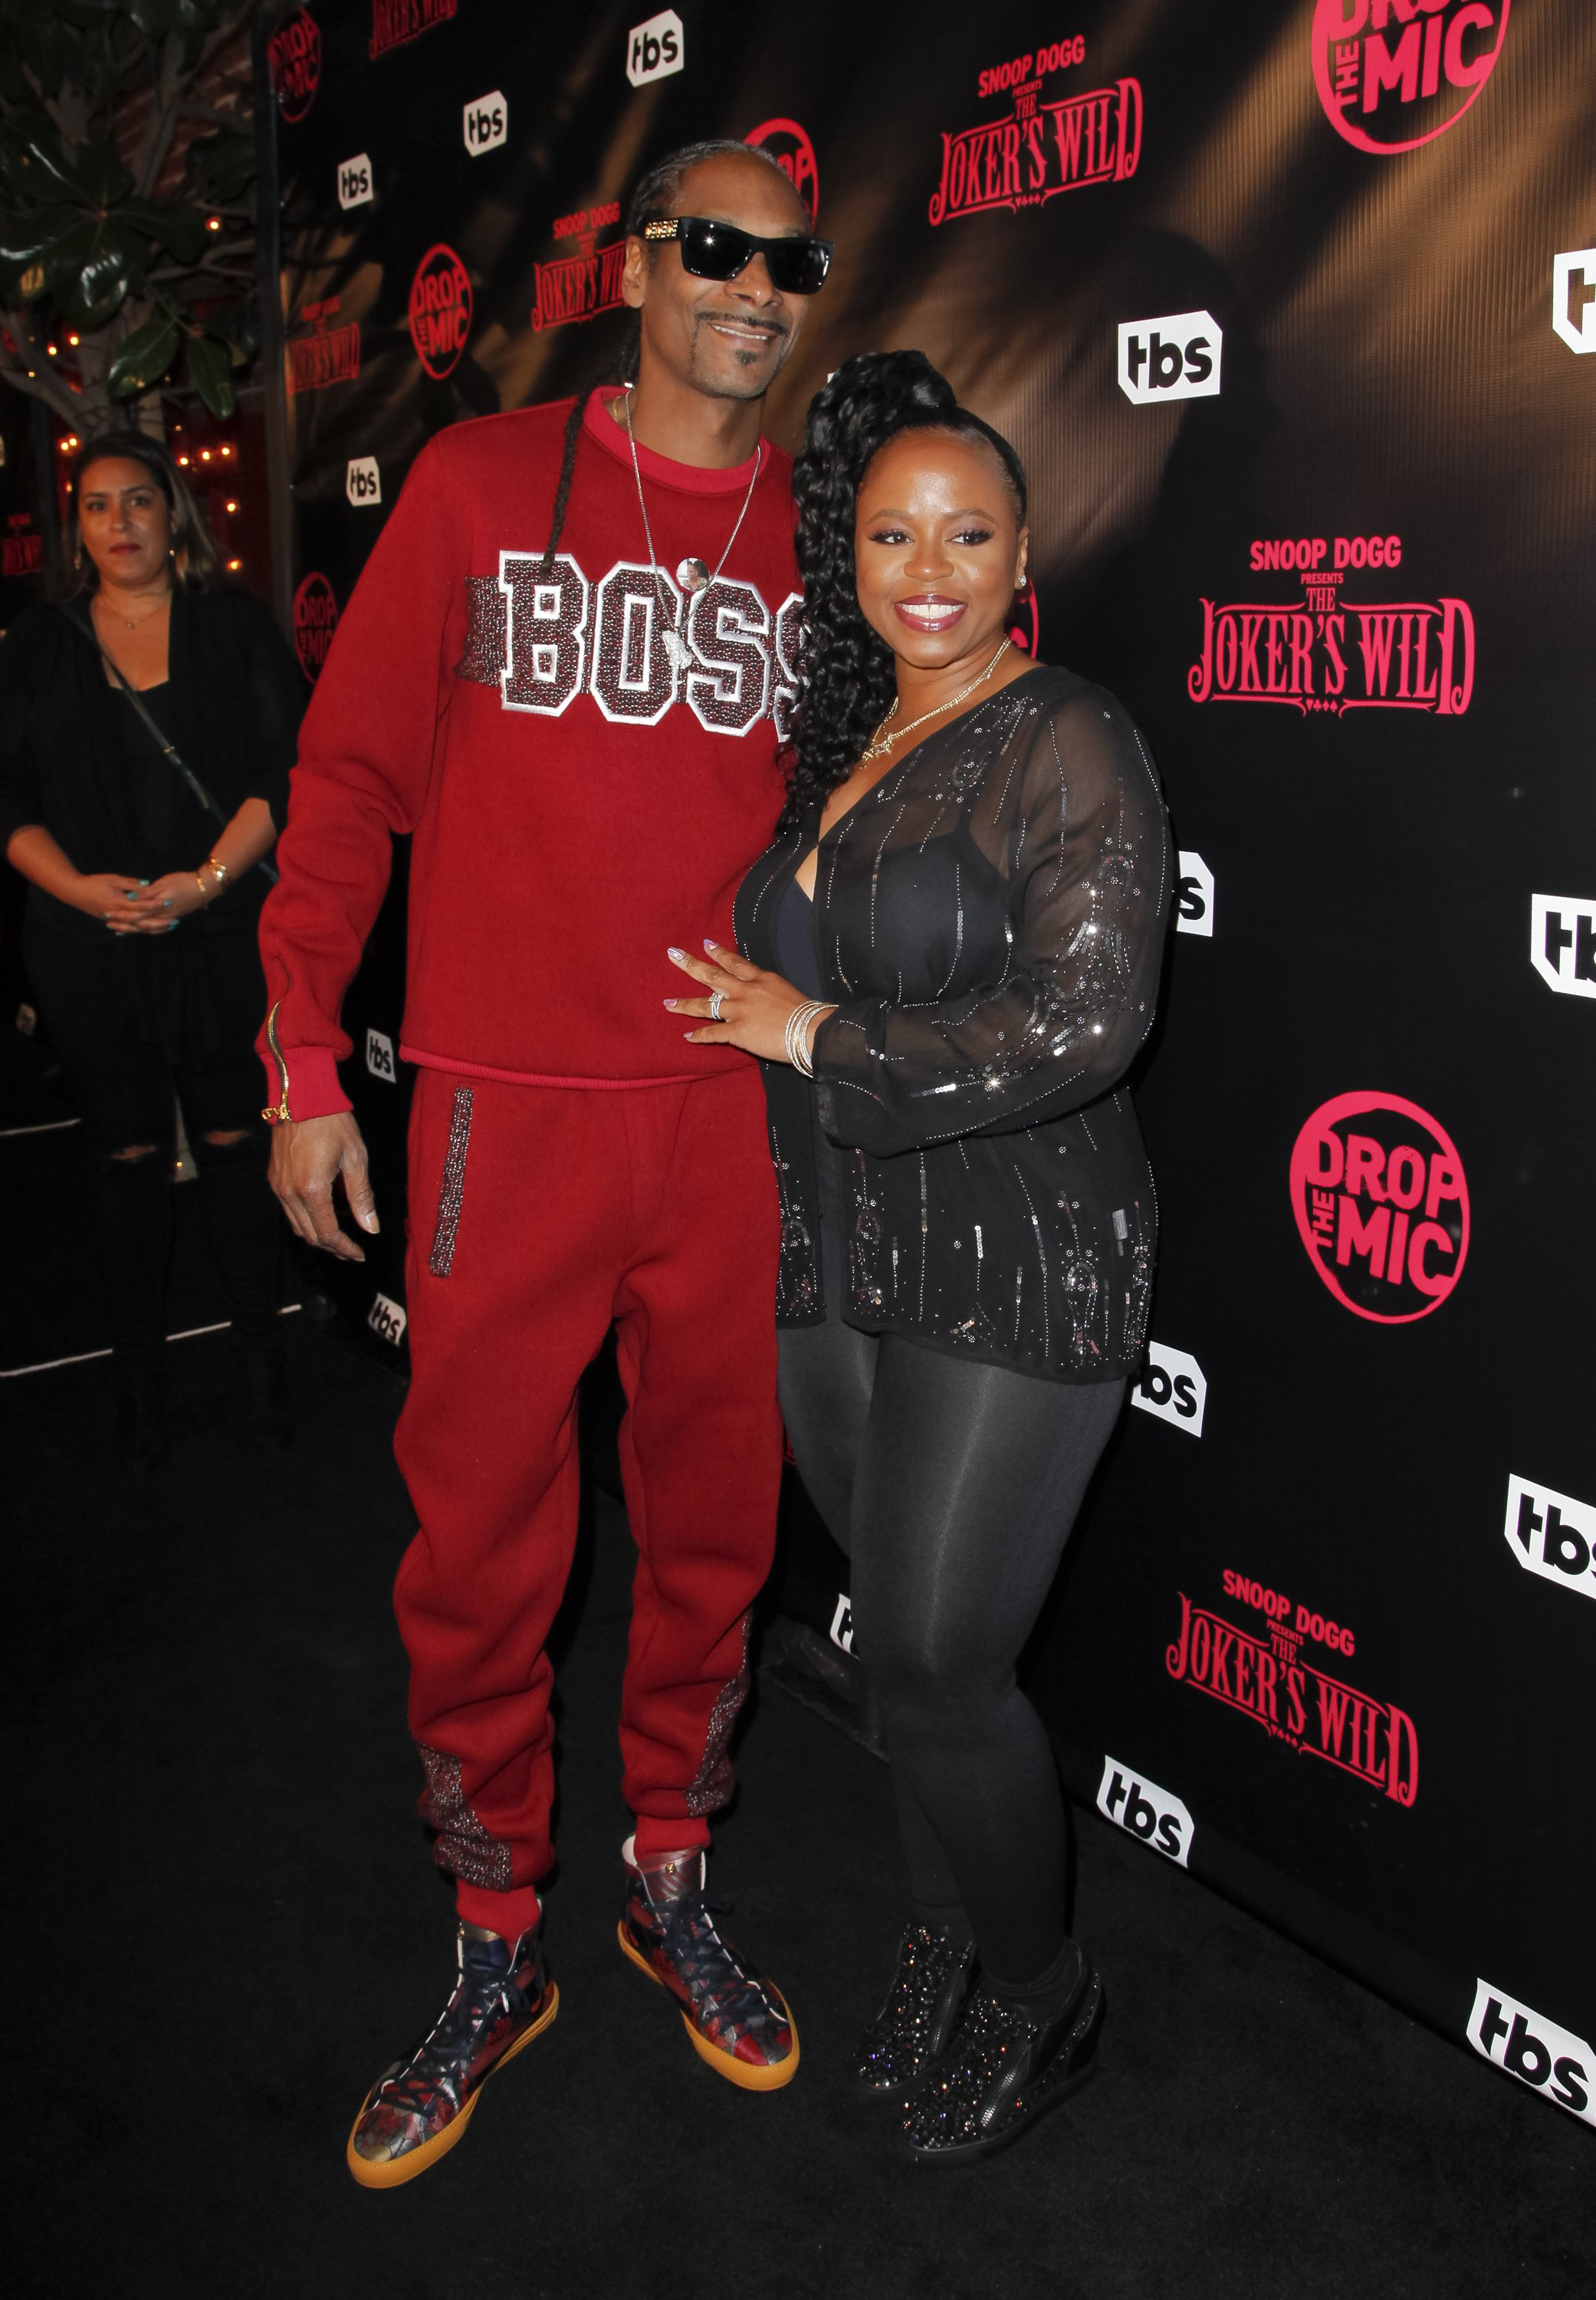 """Snoop Dogg and Shante Broadus during the premiere of  TBS's """"Drop The Mic"""" and """"The Joker's Wild"""" at The Highlight Room on October 11, 2017.   Photo: Getty Images"""